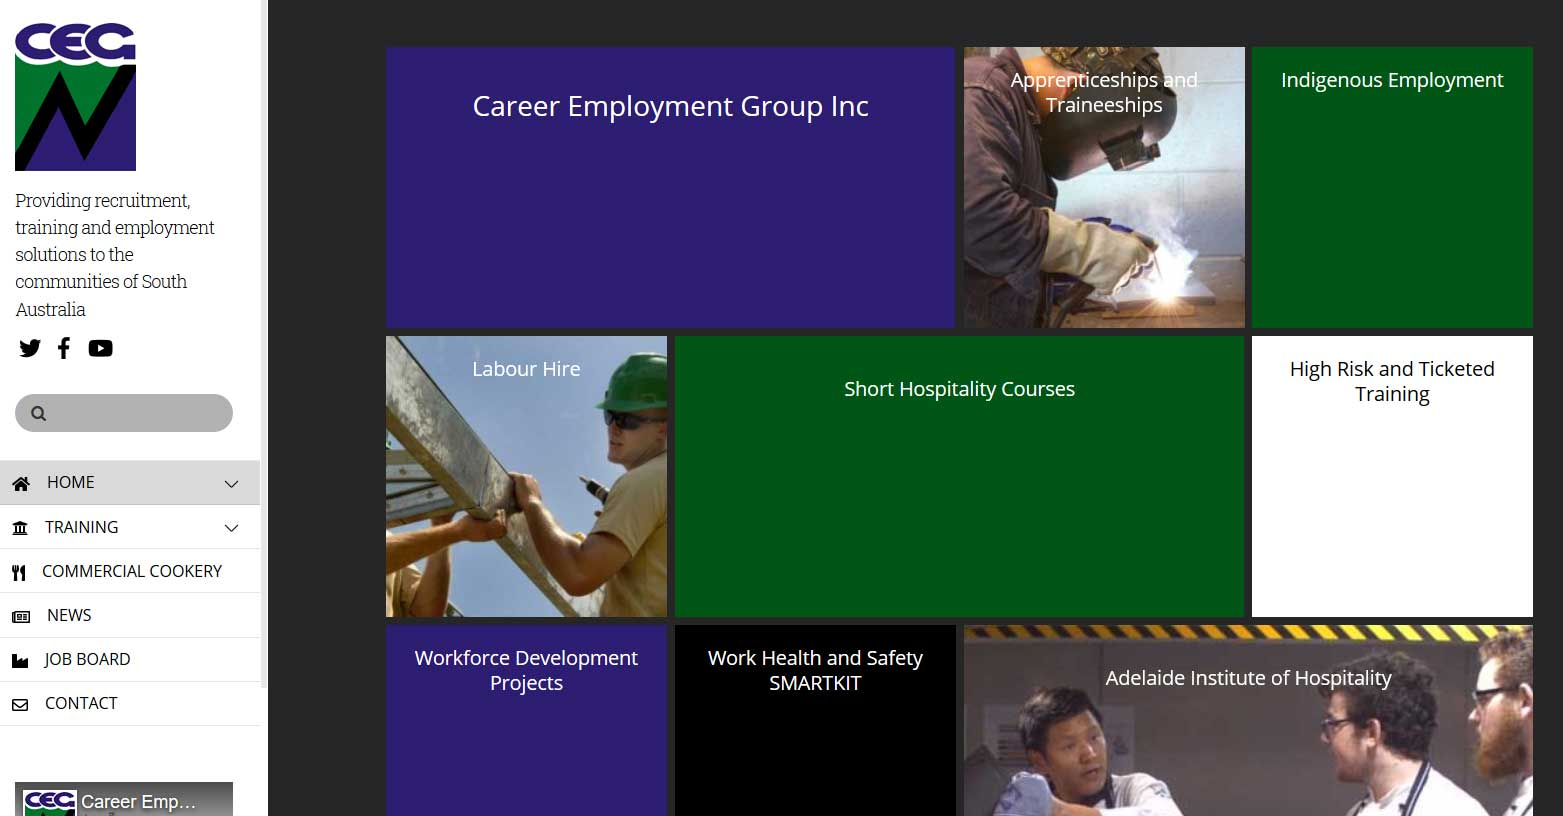 Career Employment Group